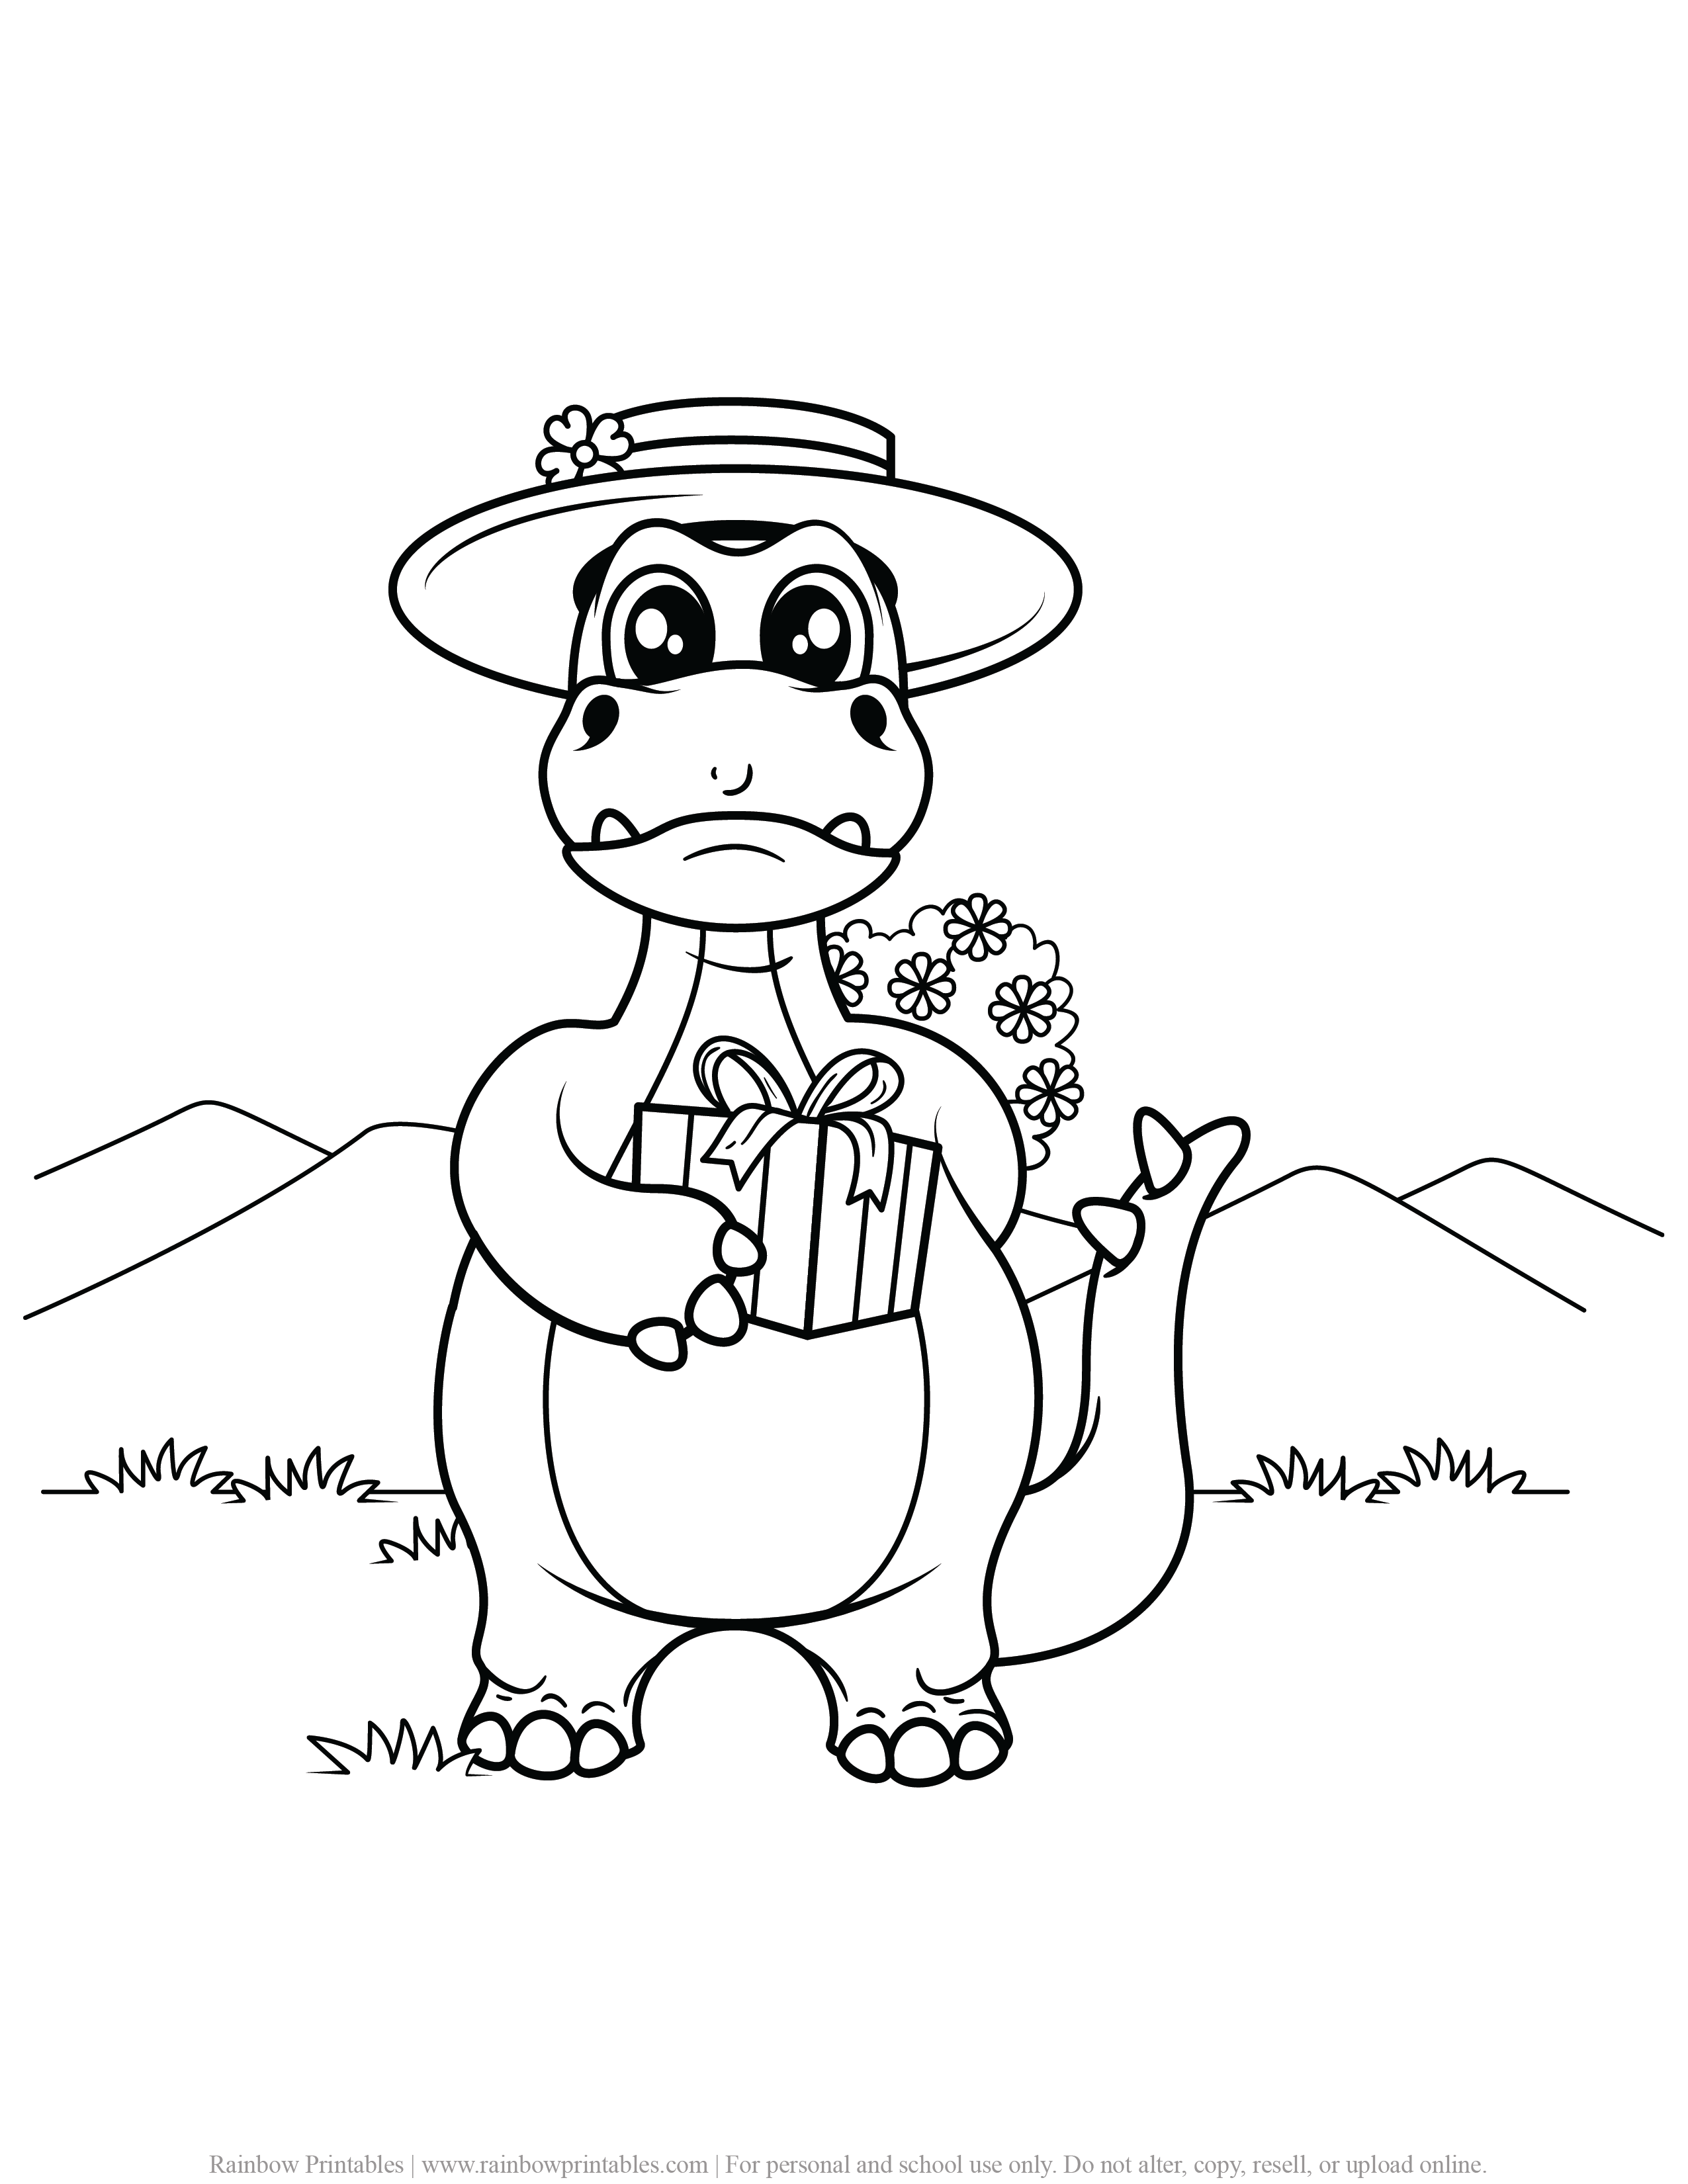 FREE DINOSAUR COLORING PAGES ACTIVITY FOR KIDS AND BOYS DINO DRAGON PRINTABLE-15